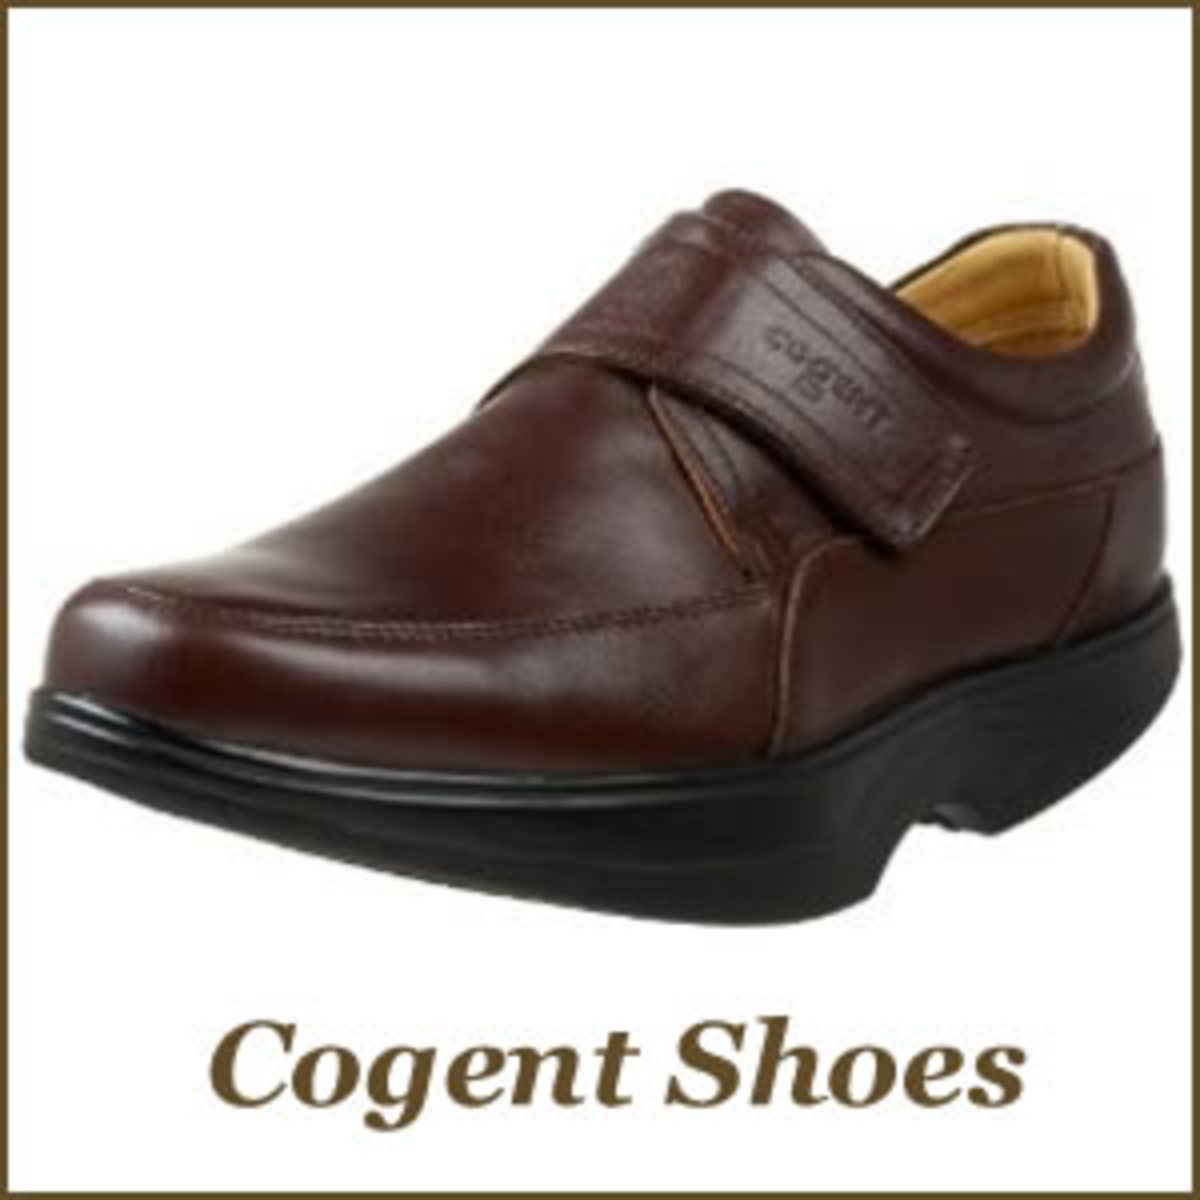 Cogent shoes - Work your muscles at work